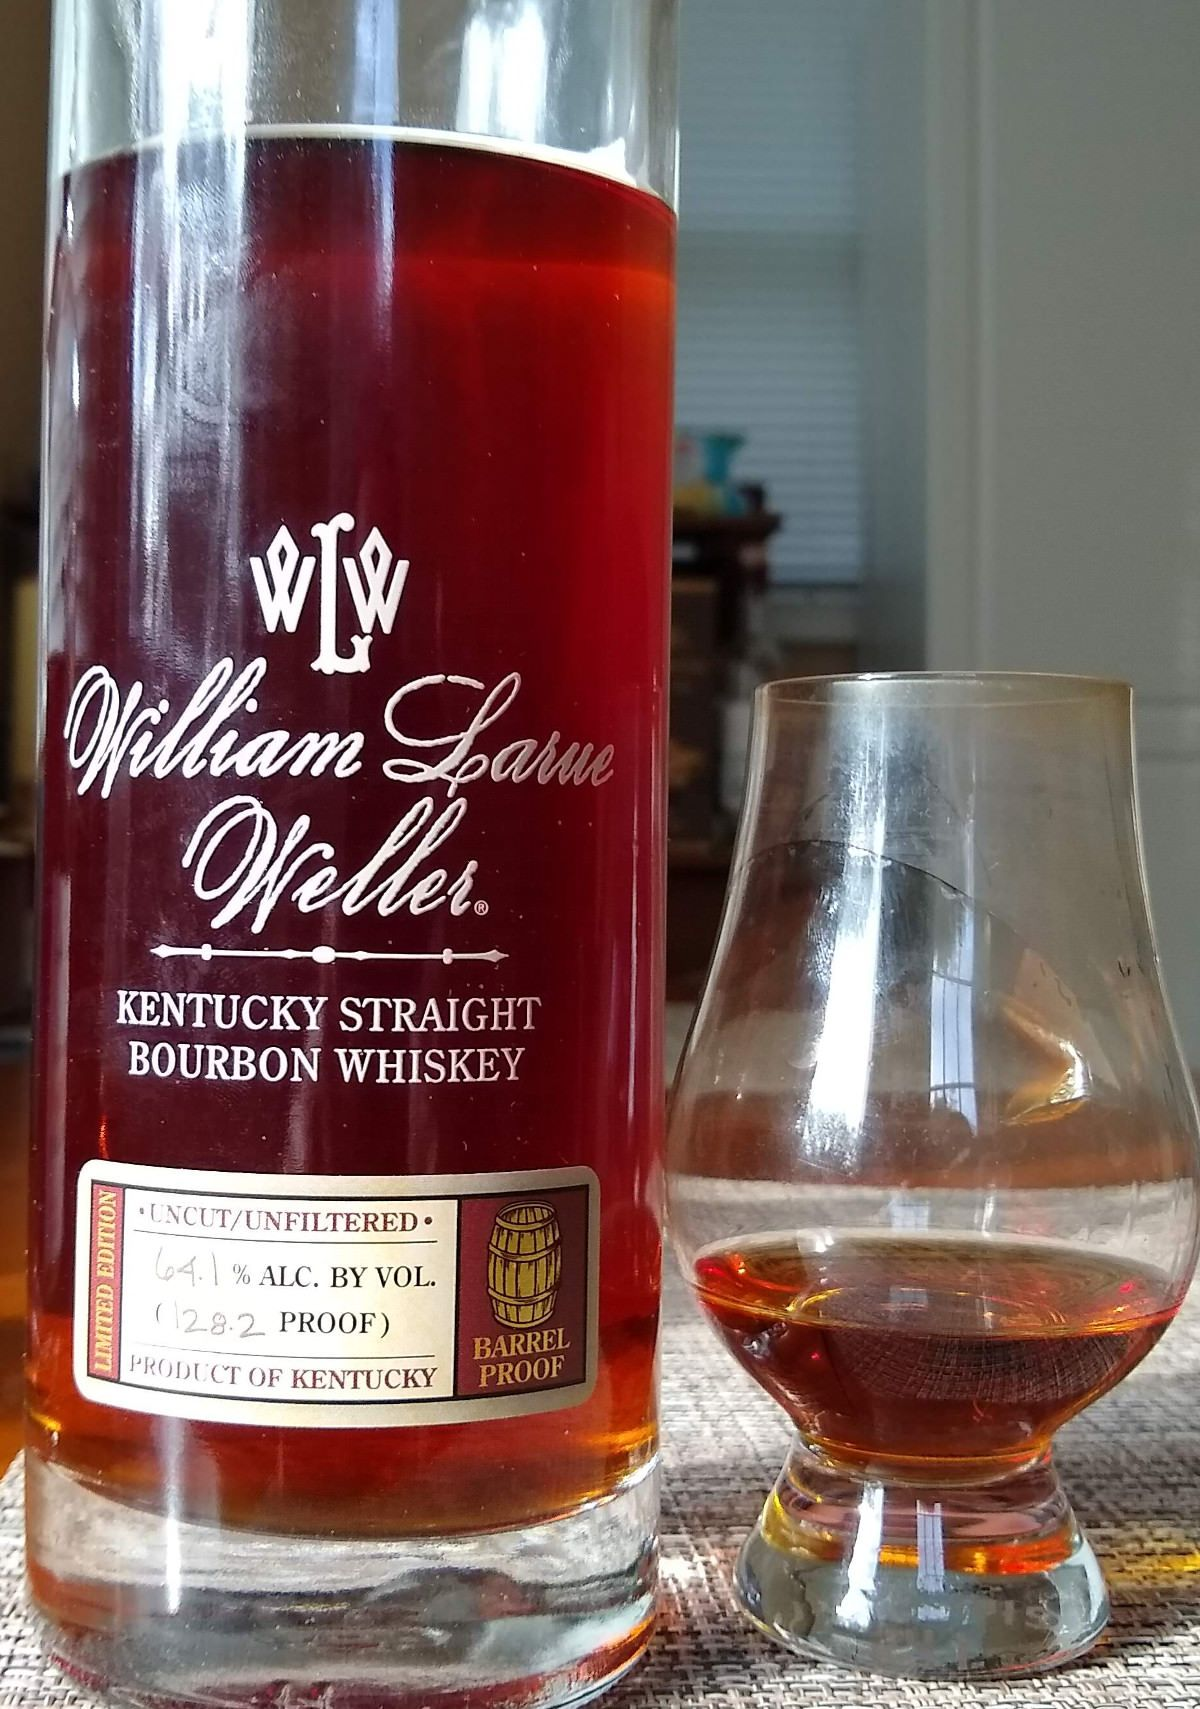 Pin By Ariel Ramos On Whiskey In 2020 Cigars And Whiskey Kentucky Straight Bourbon Whiskey Weller